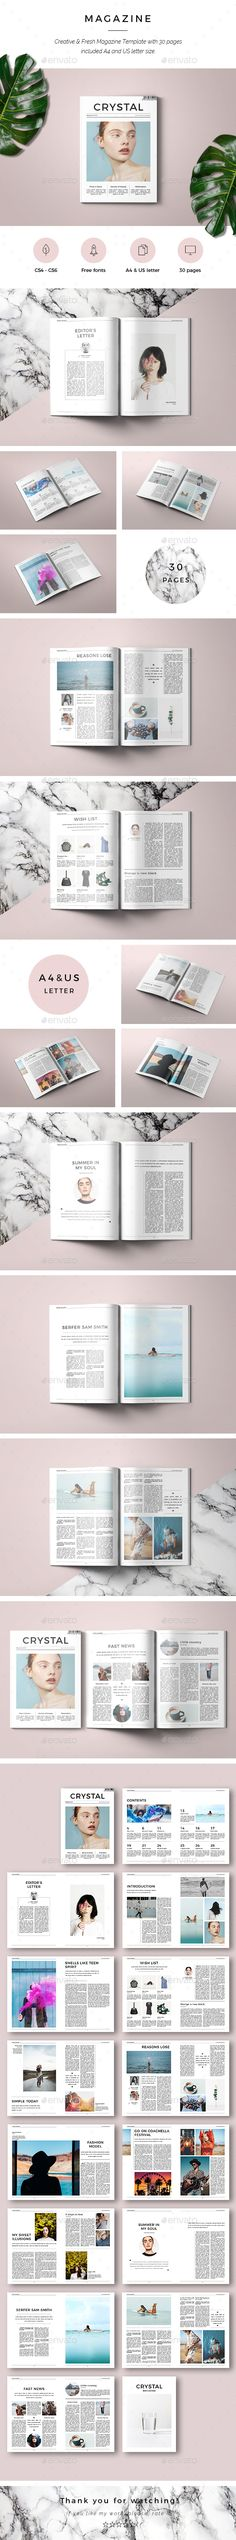 Crystal Magazine - #Magazines Print #Templates Download here:  https://graphicriver.net/item/crystal-magazine/20287224?ref=alena994